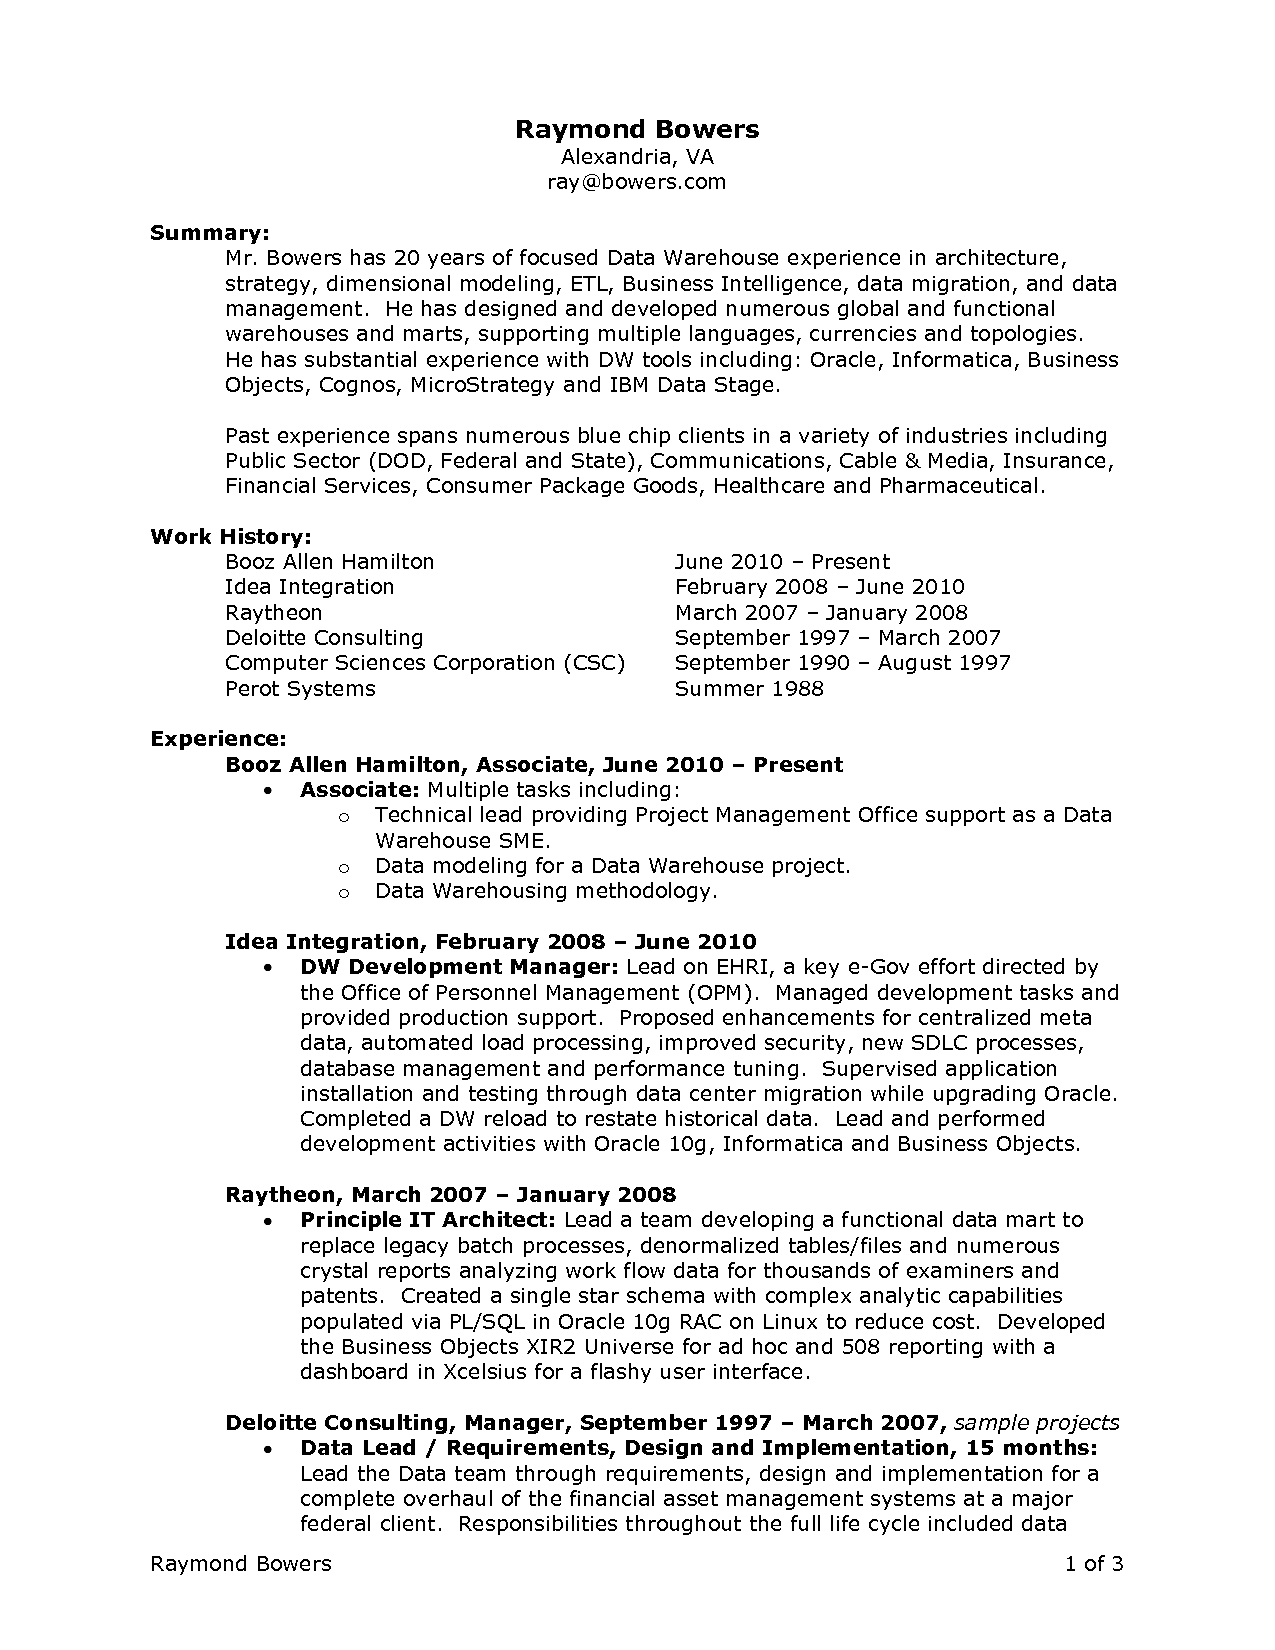 Https://s Media Cache Ak0.pinimg.com/originals/51/...  Sample Resume For Warehouse Worker